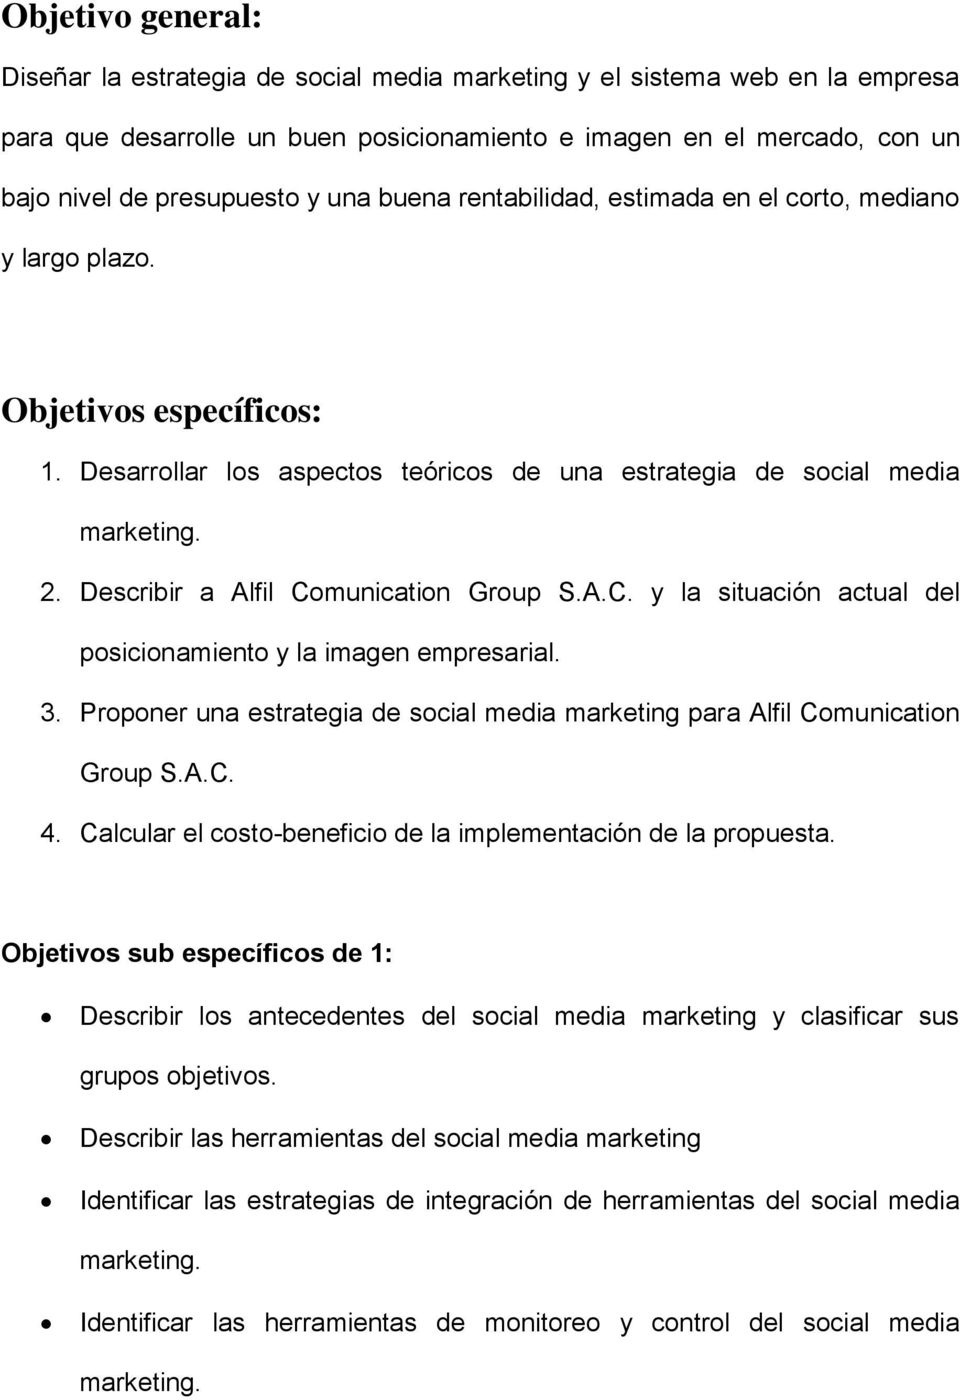 Describir a Alfil Comunication Group S.A.C. y la situación actual del posicionamiento y la imagen empresarial. 3. Proponer una estrategia de social media marketing para Alfil Comunication Group S.A.C. 4.